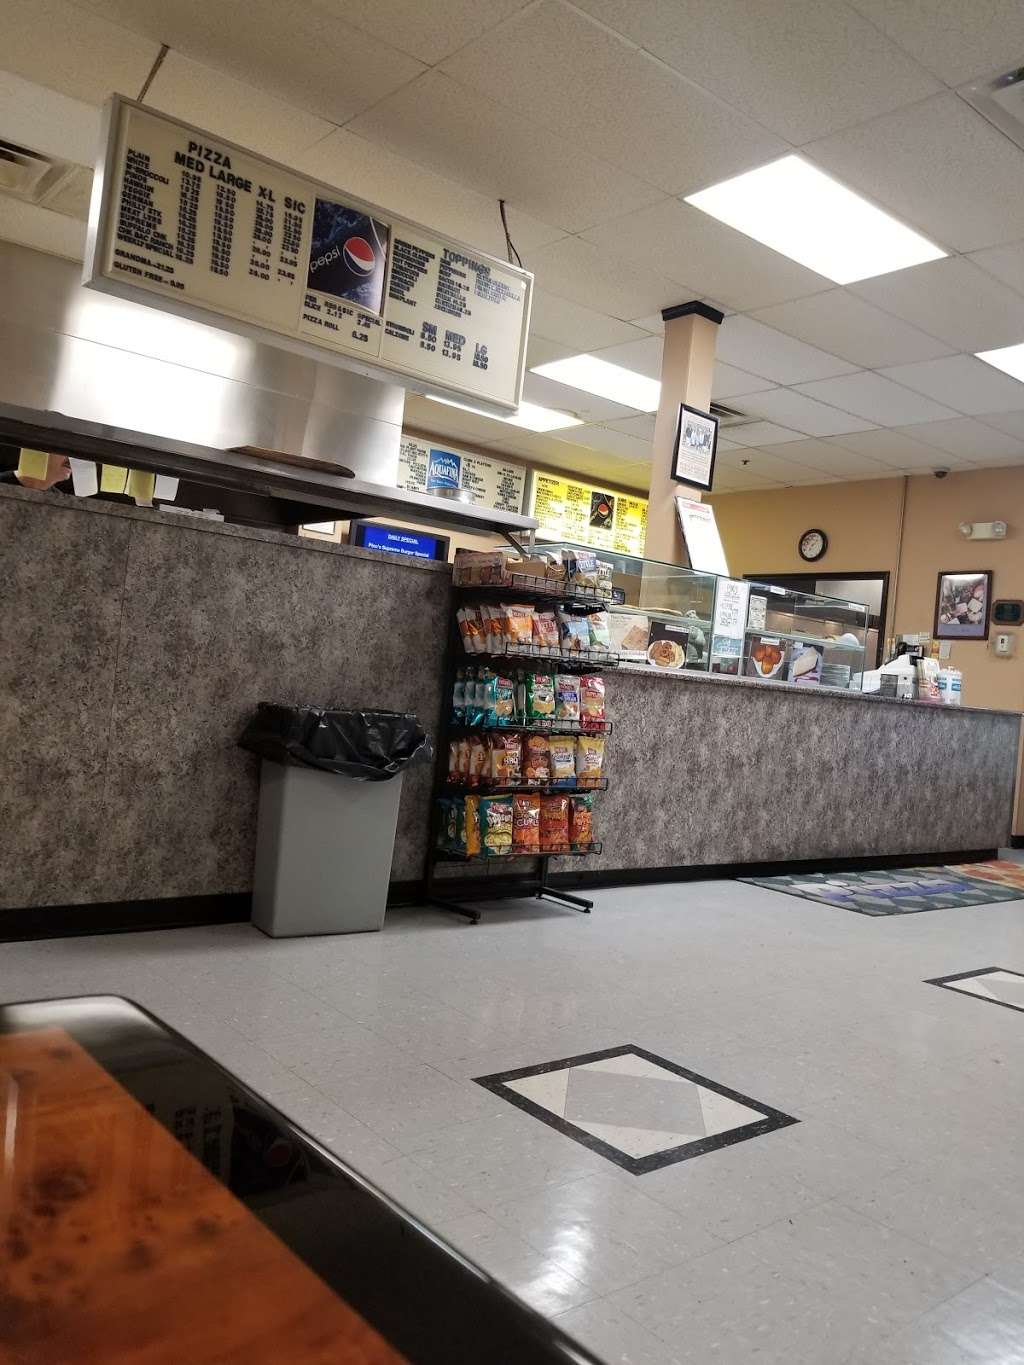 Pinos Pizzeria - restaurant  | Photo 4 of 9 | Address: 230 Line St, Easton, PA 18042, USA | Phone: (610) 253-2944